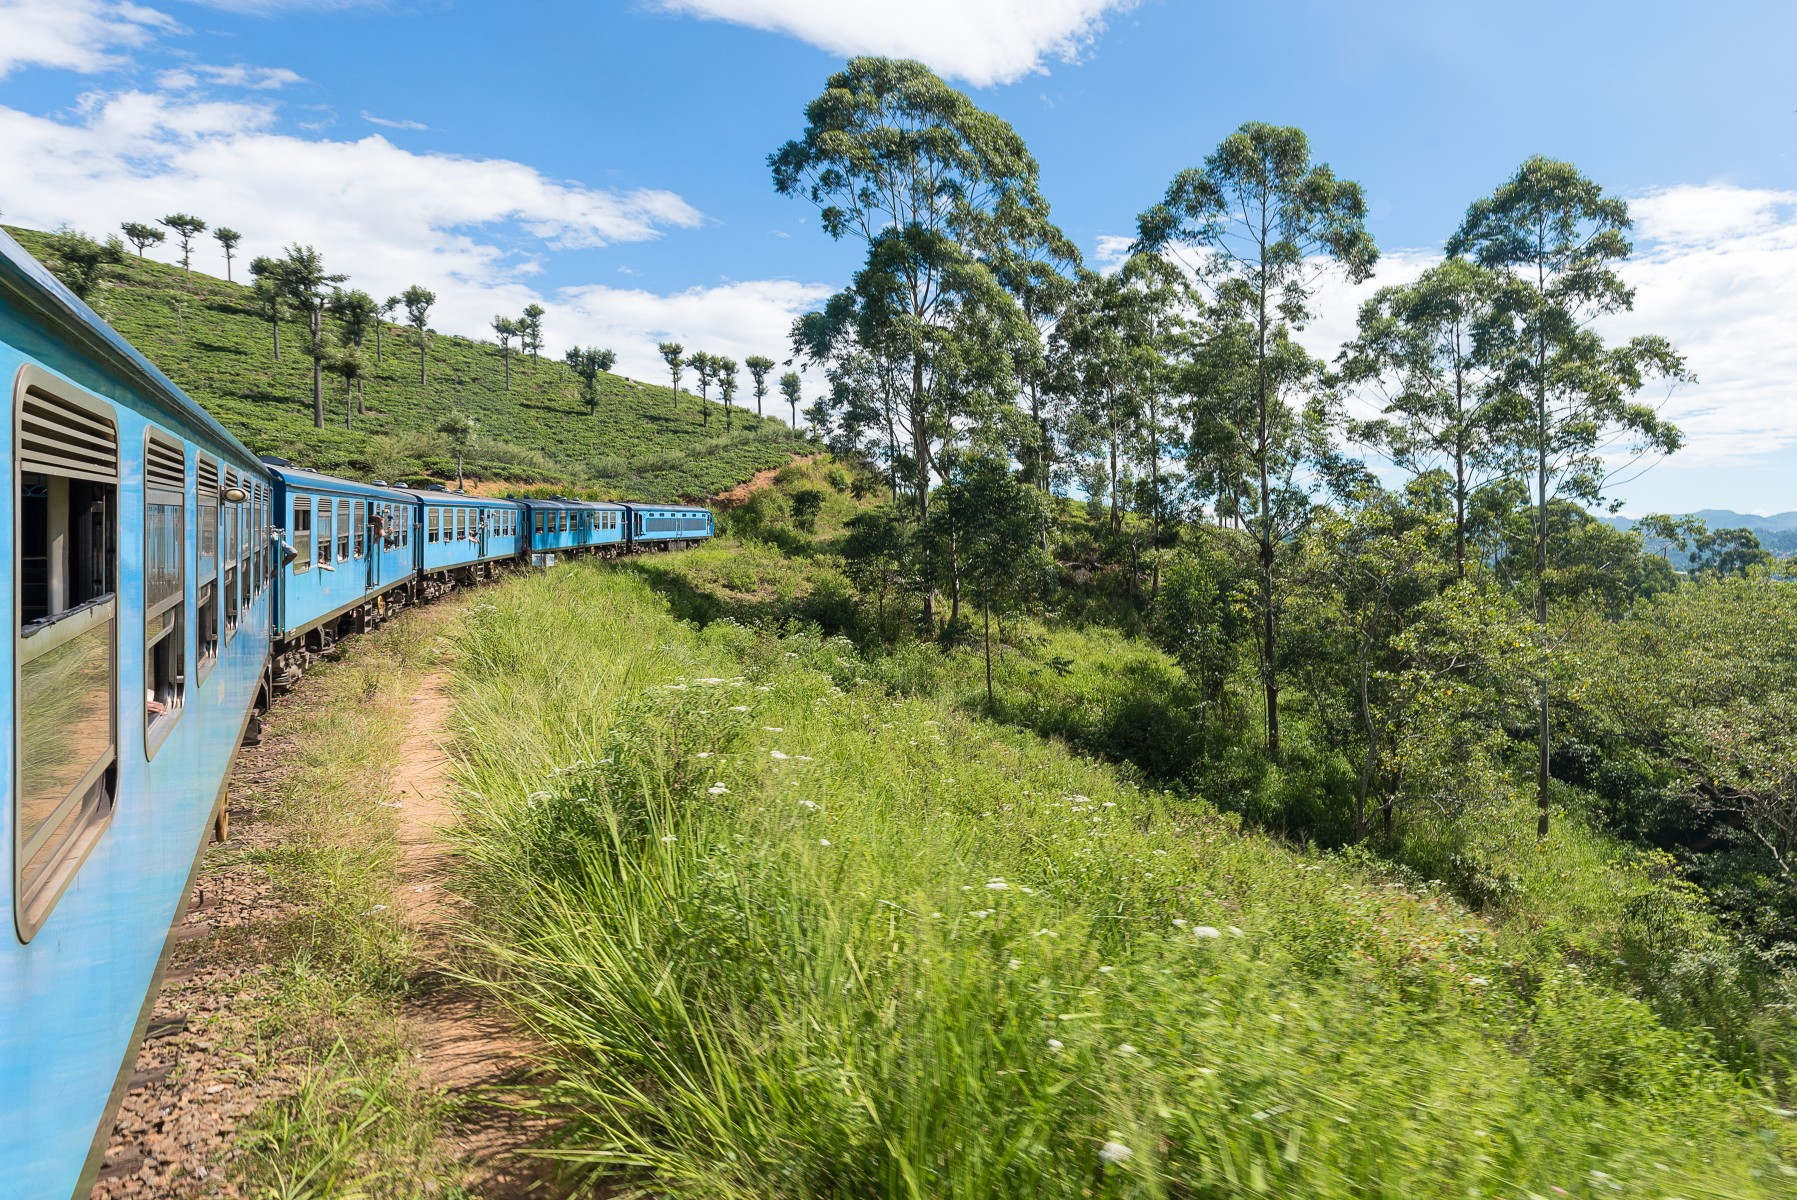 The Ella to Kandy Diesel train